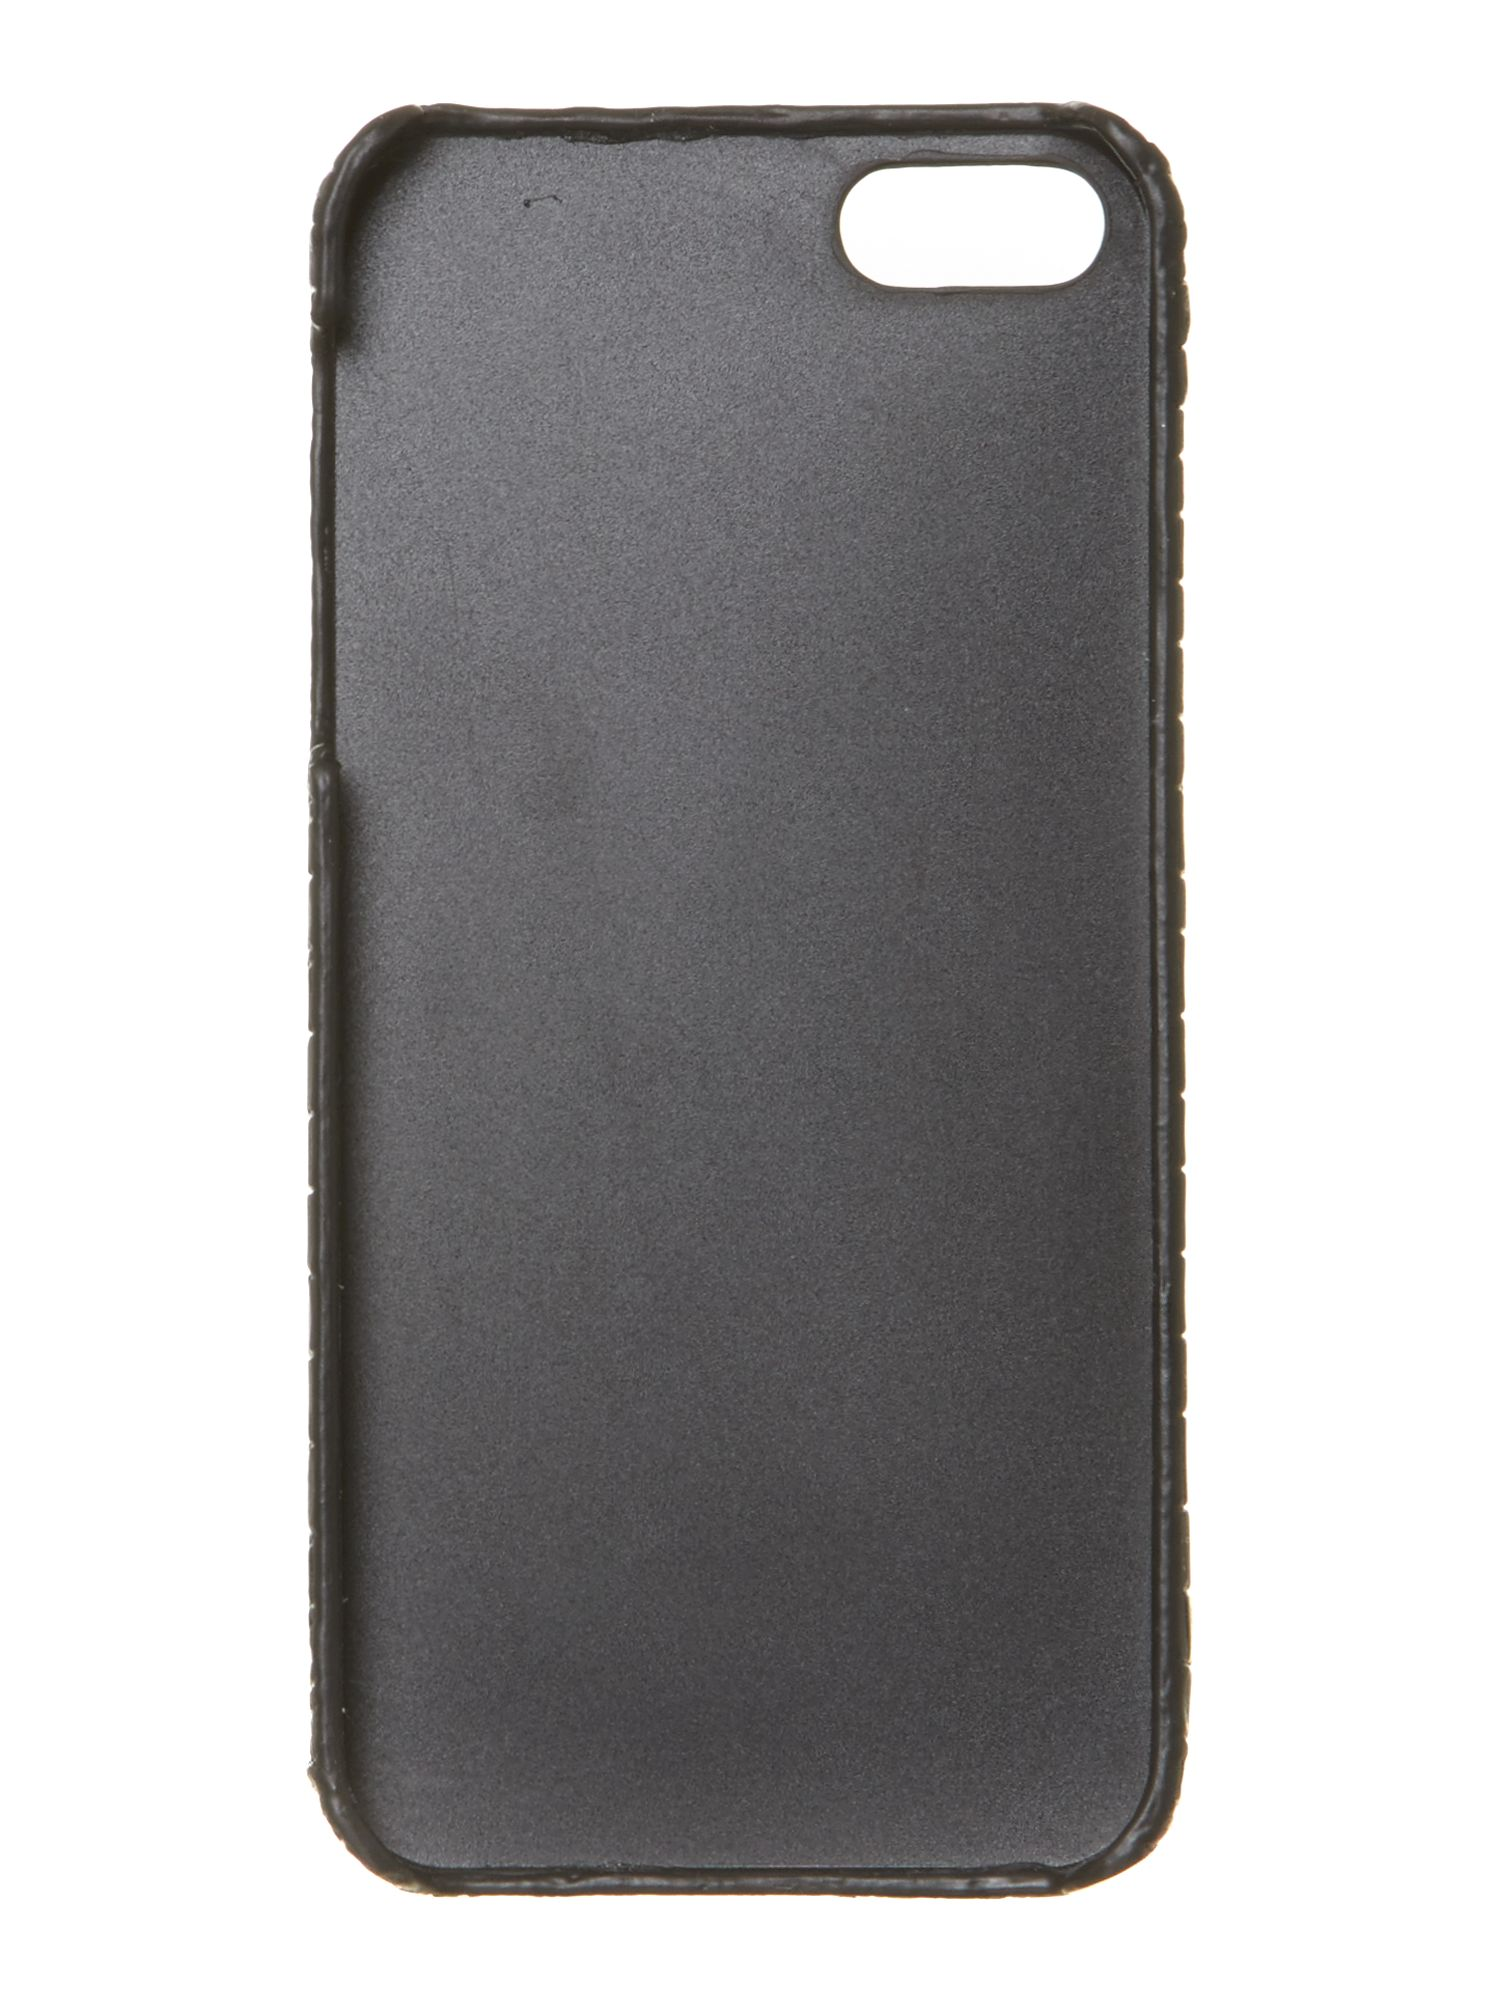 Saffiano black Iphone case